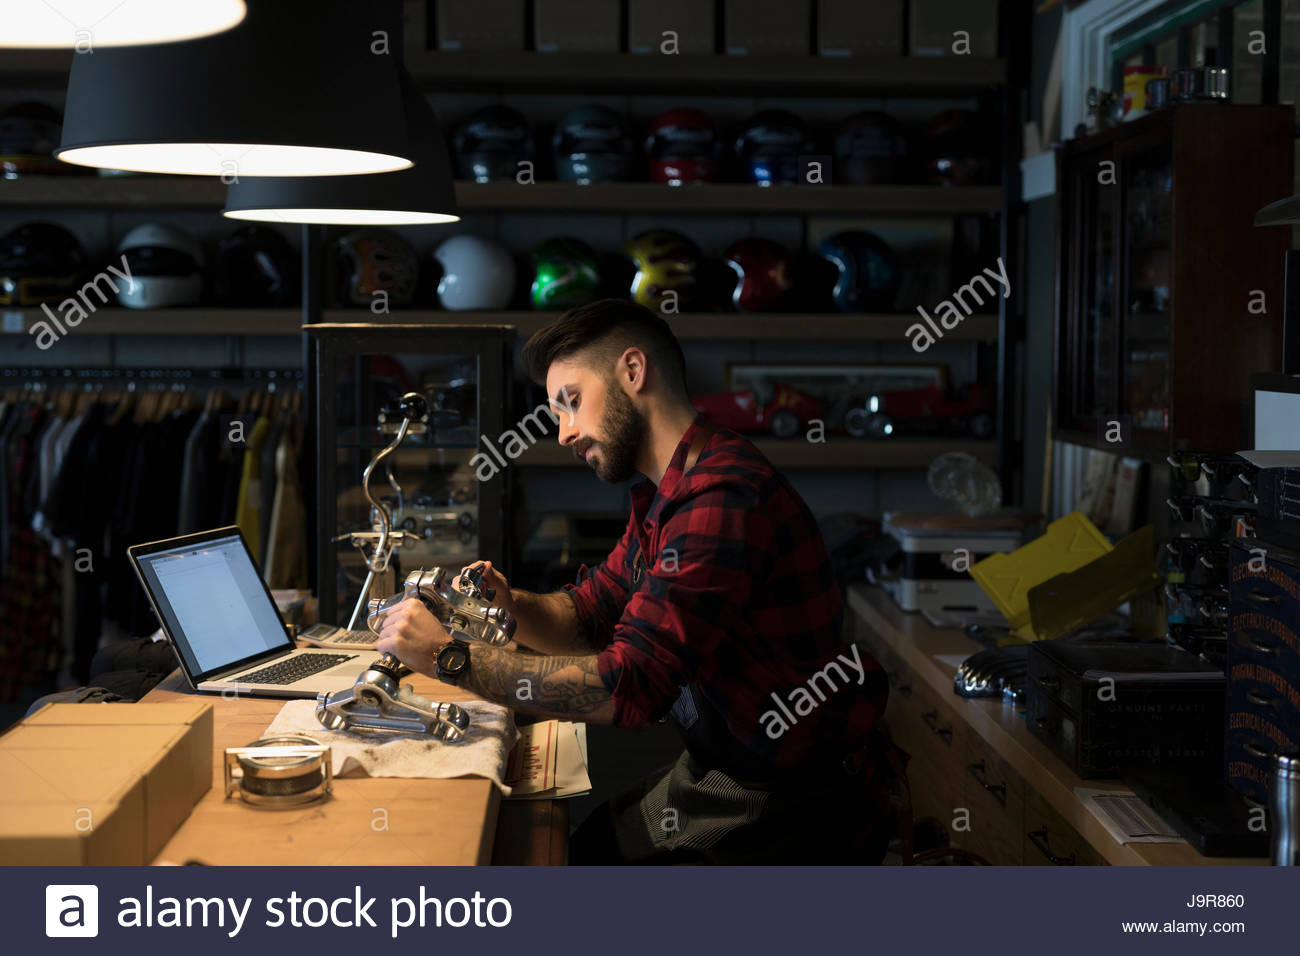 Motorcycle mechanic shop owner fixing part, working late behind counter - Stock Image